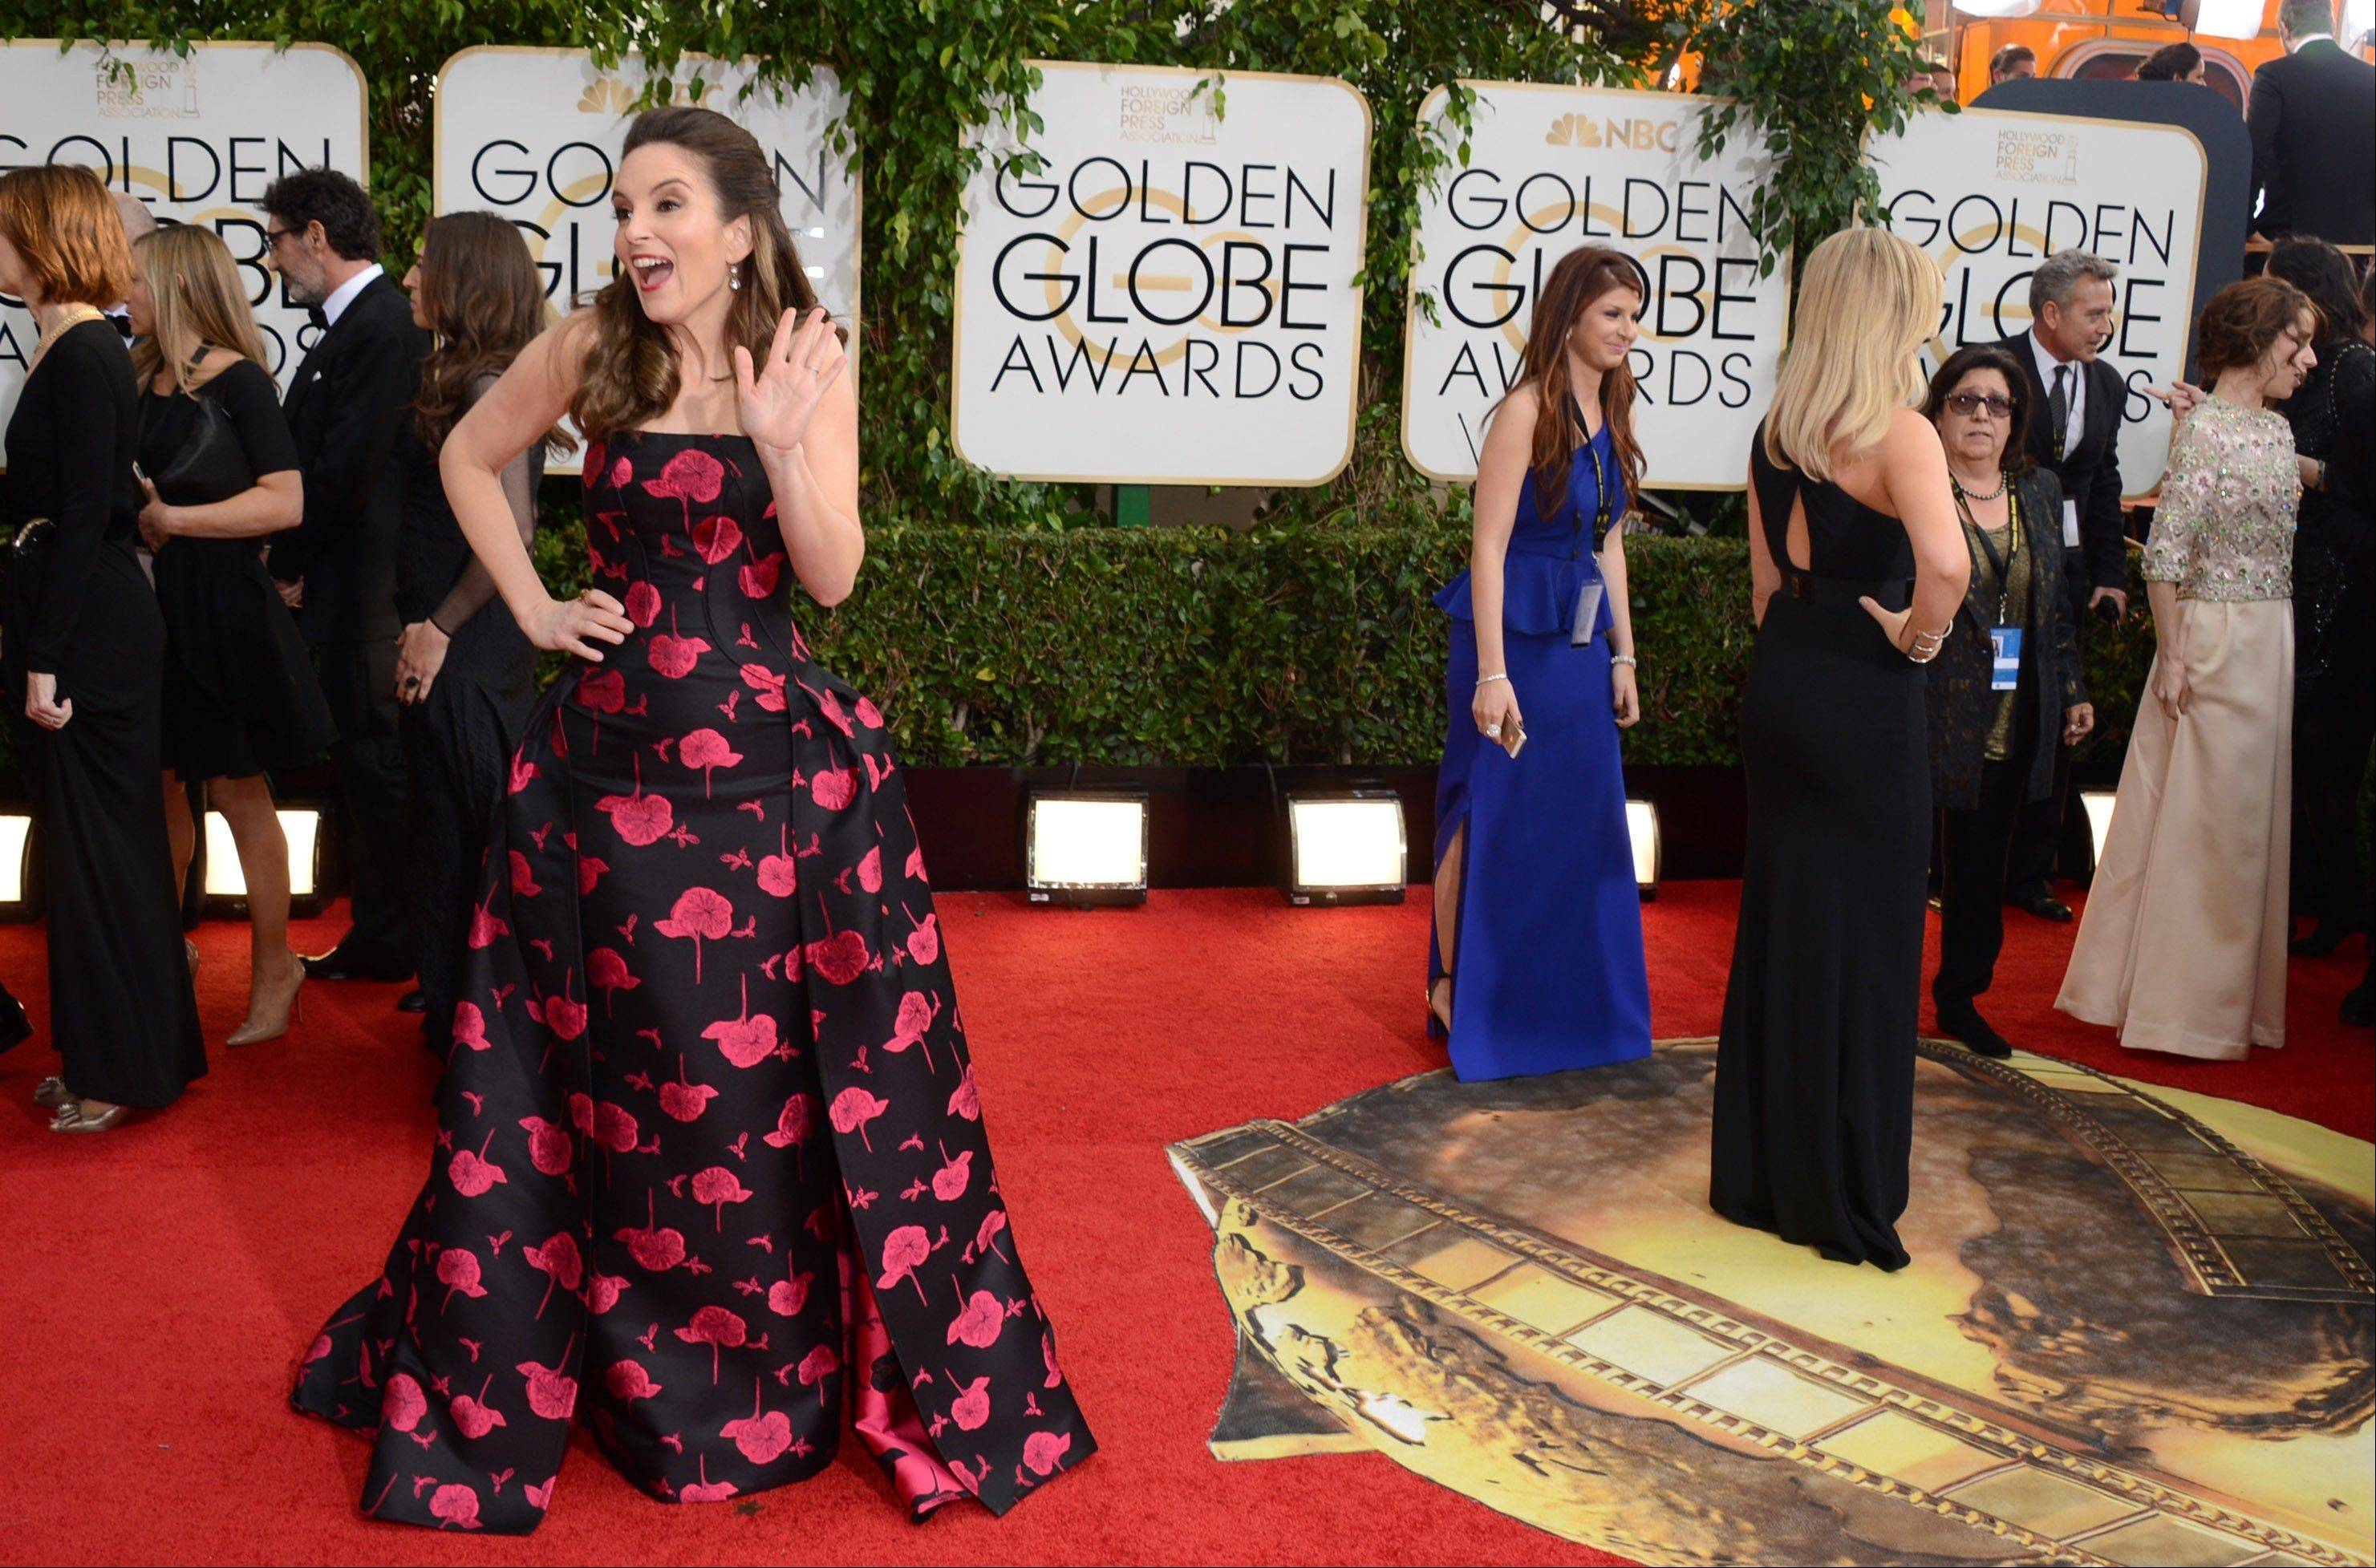 Golden Globes host Tina Fey waves to the crowd while she waits for her co-host and real life best friend Amy Poehler to finish with the press line.